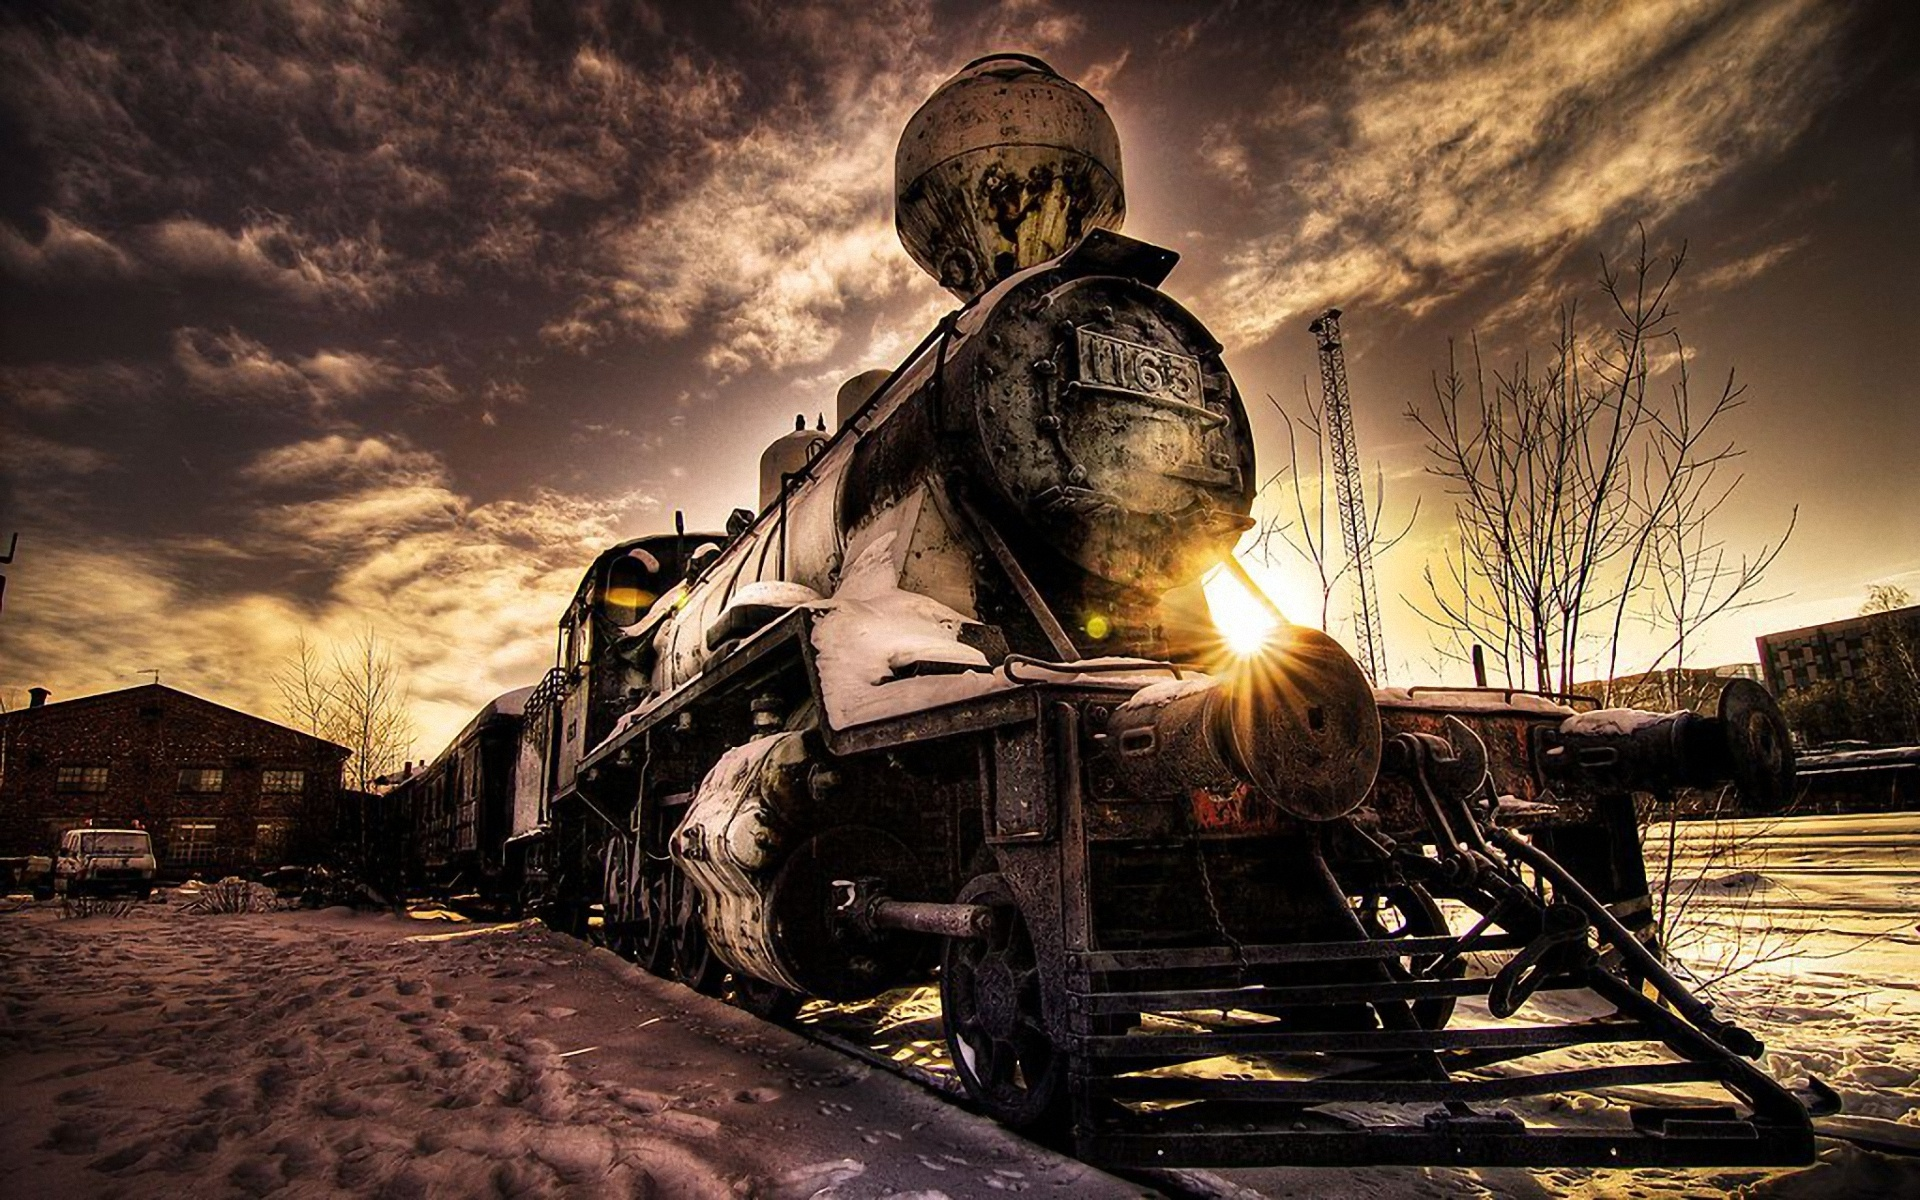 Free Download Download Old Train Wallpaper Which Is Under